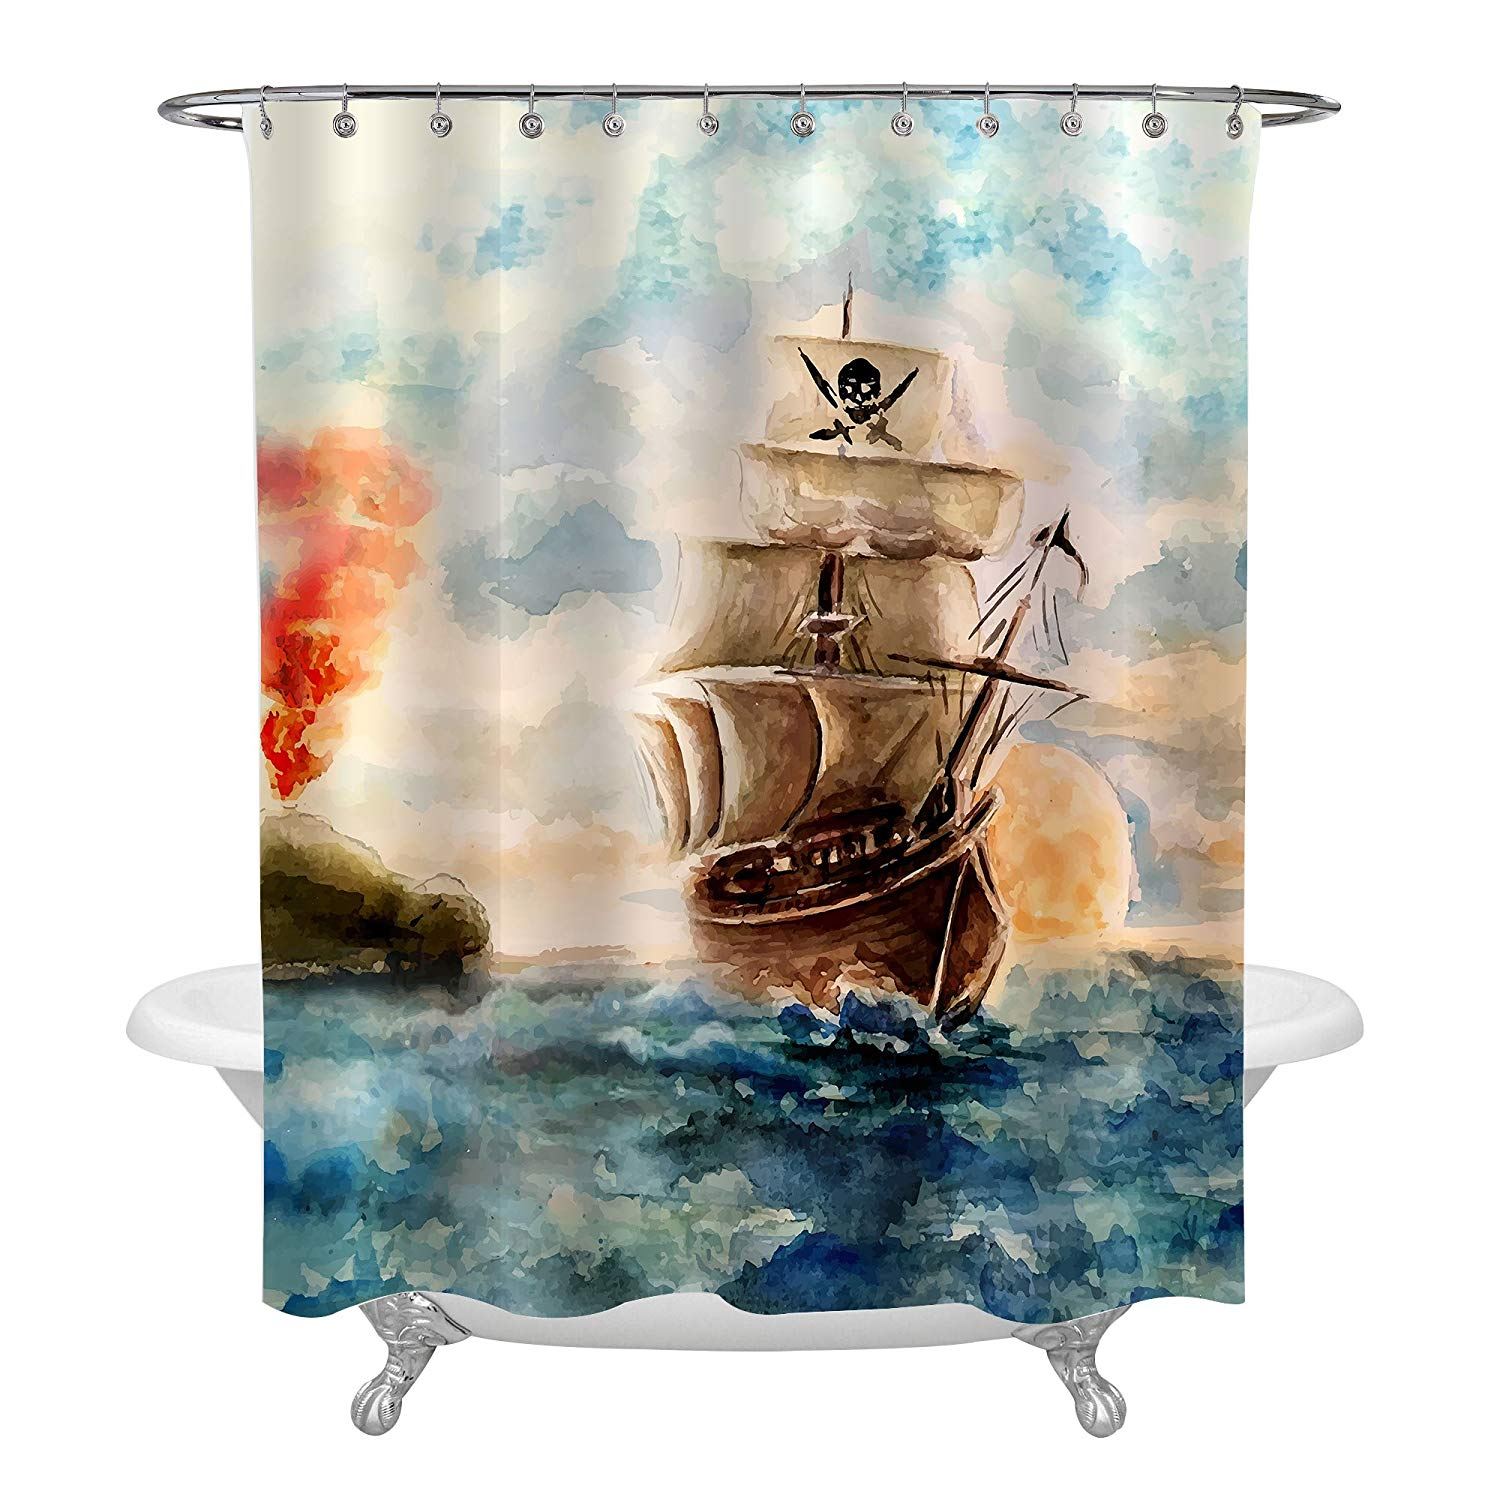 Get Quotations Caribbean Pirate Ship Cruises In Treasure Adventure Shower Curtain Abstract Accessories Bathroom Decorations